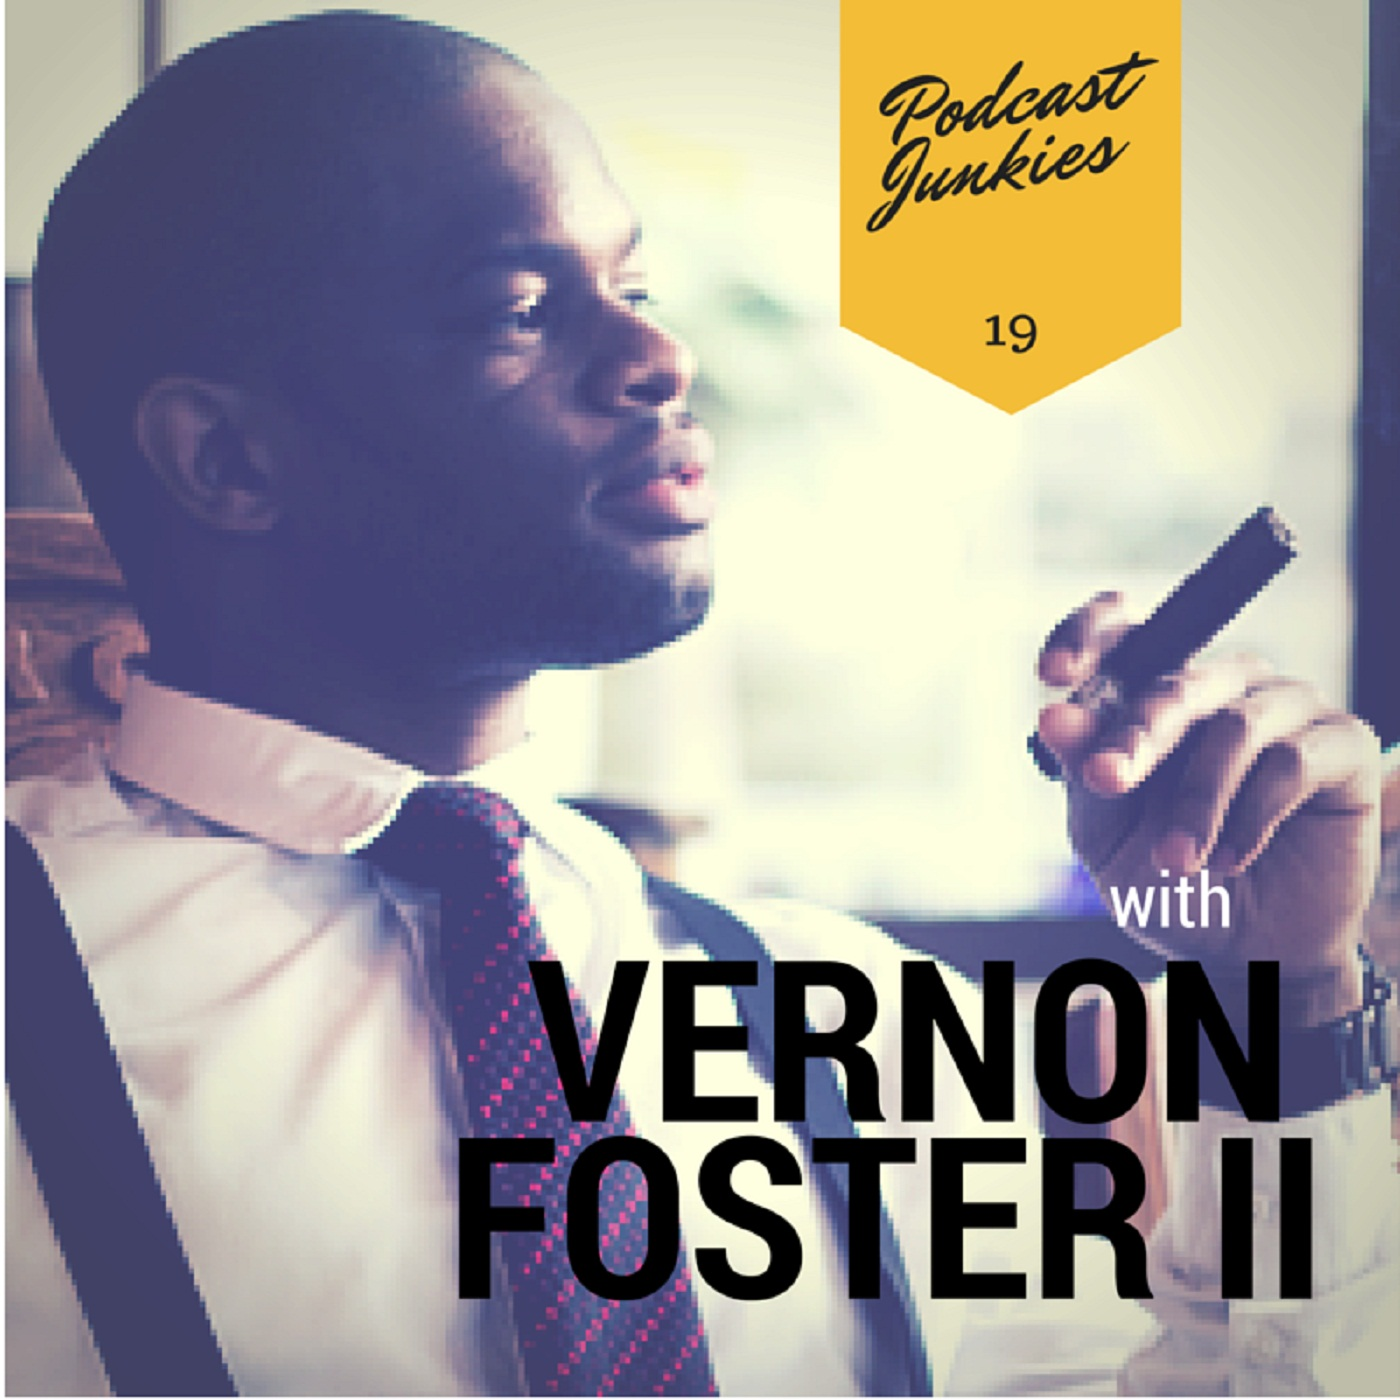 019 Vernon Foster II | Realize That You Have Your Fans Listening